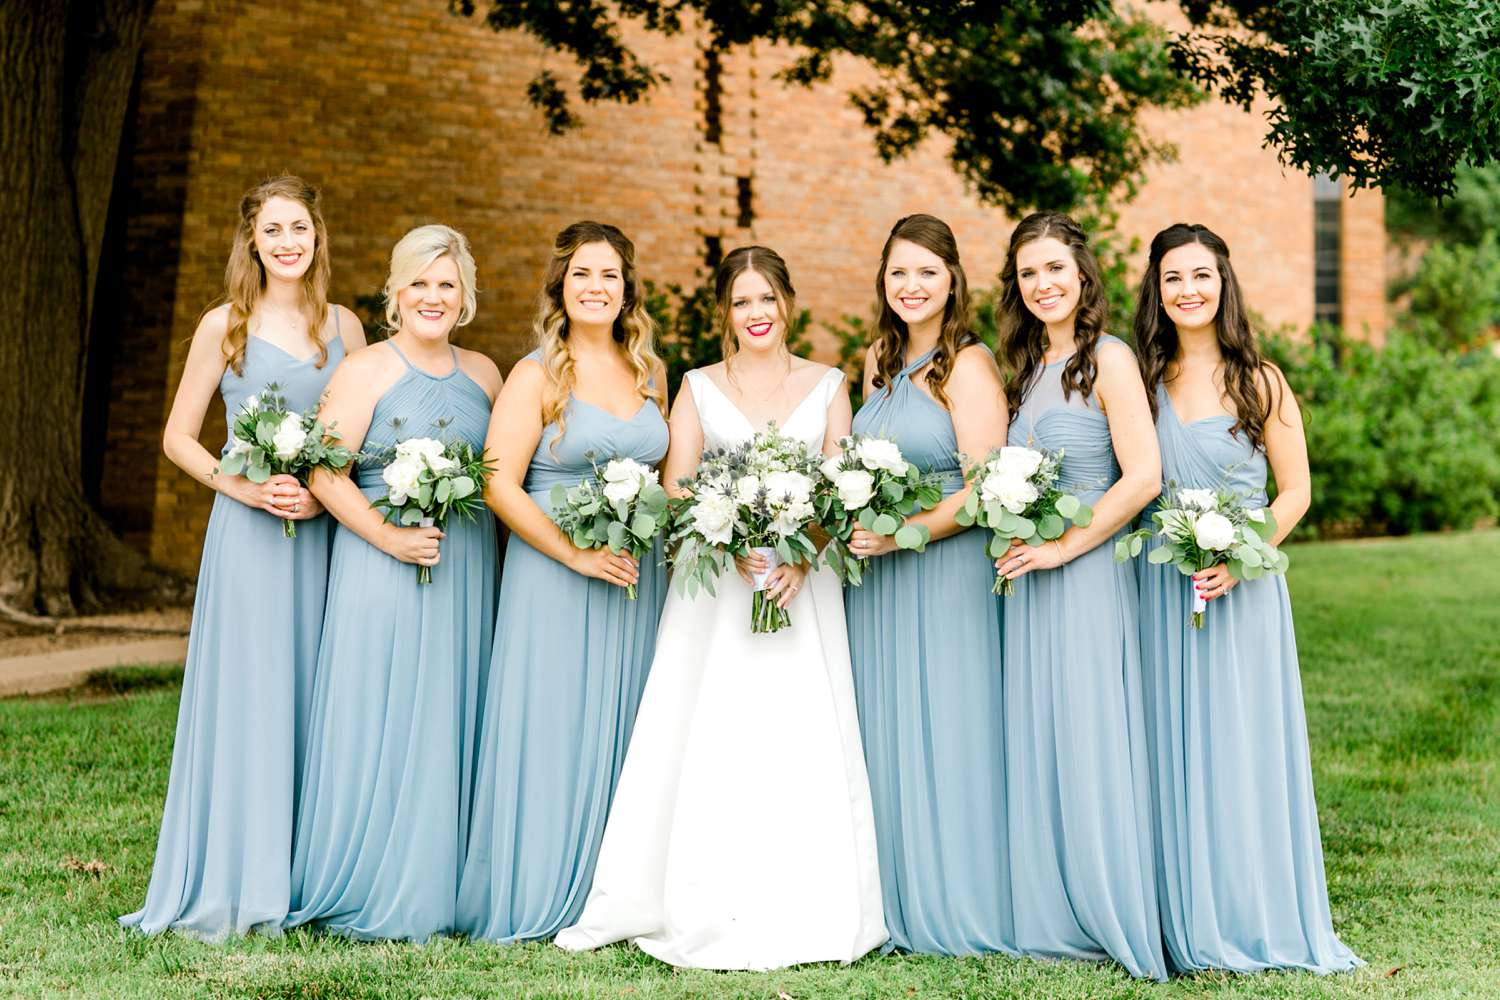 HANNAH+CRAIG+CHILDS+TEXAS+TECH+WEDDING+ALLEEJ+LUBBOCK+PHOTOGRAPHER_0017.jpg